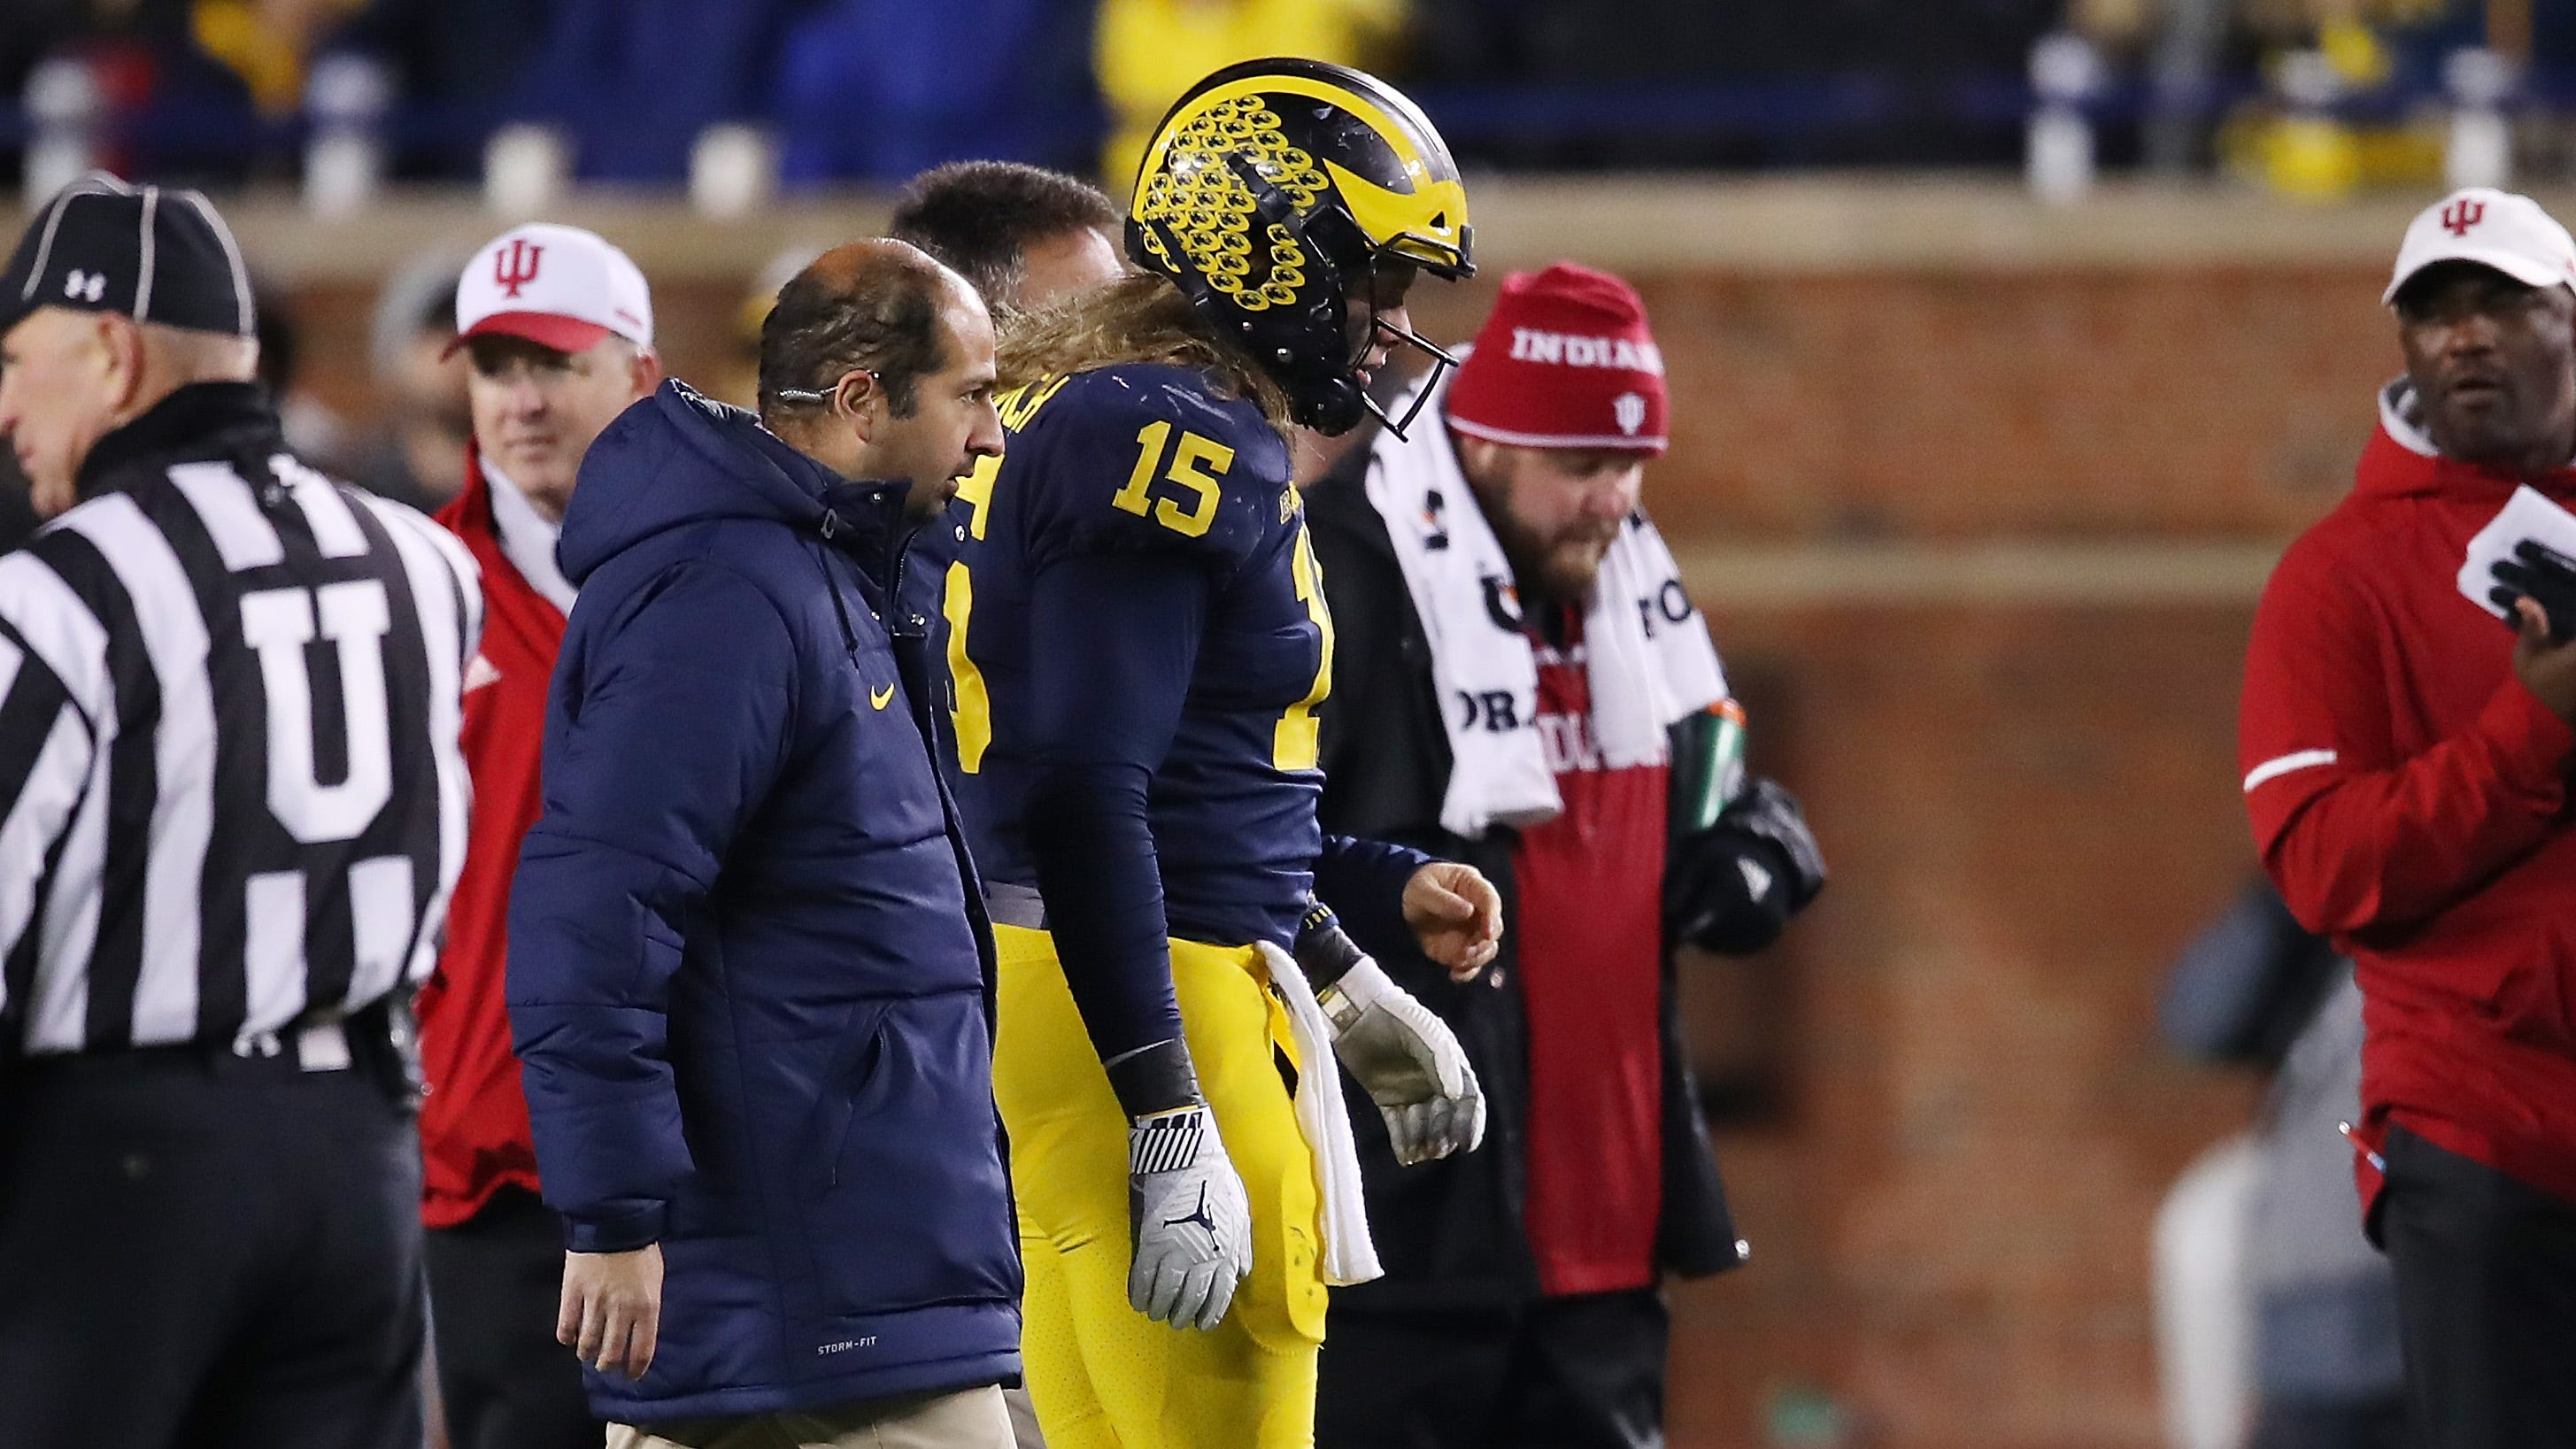 Michigan Players Hopeful Chase Winovich Plays At Ohio State